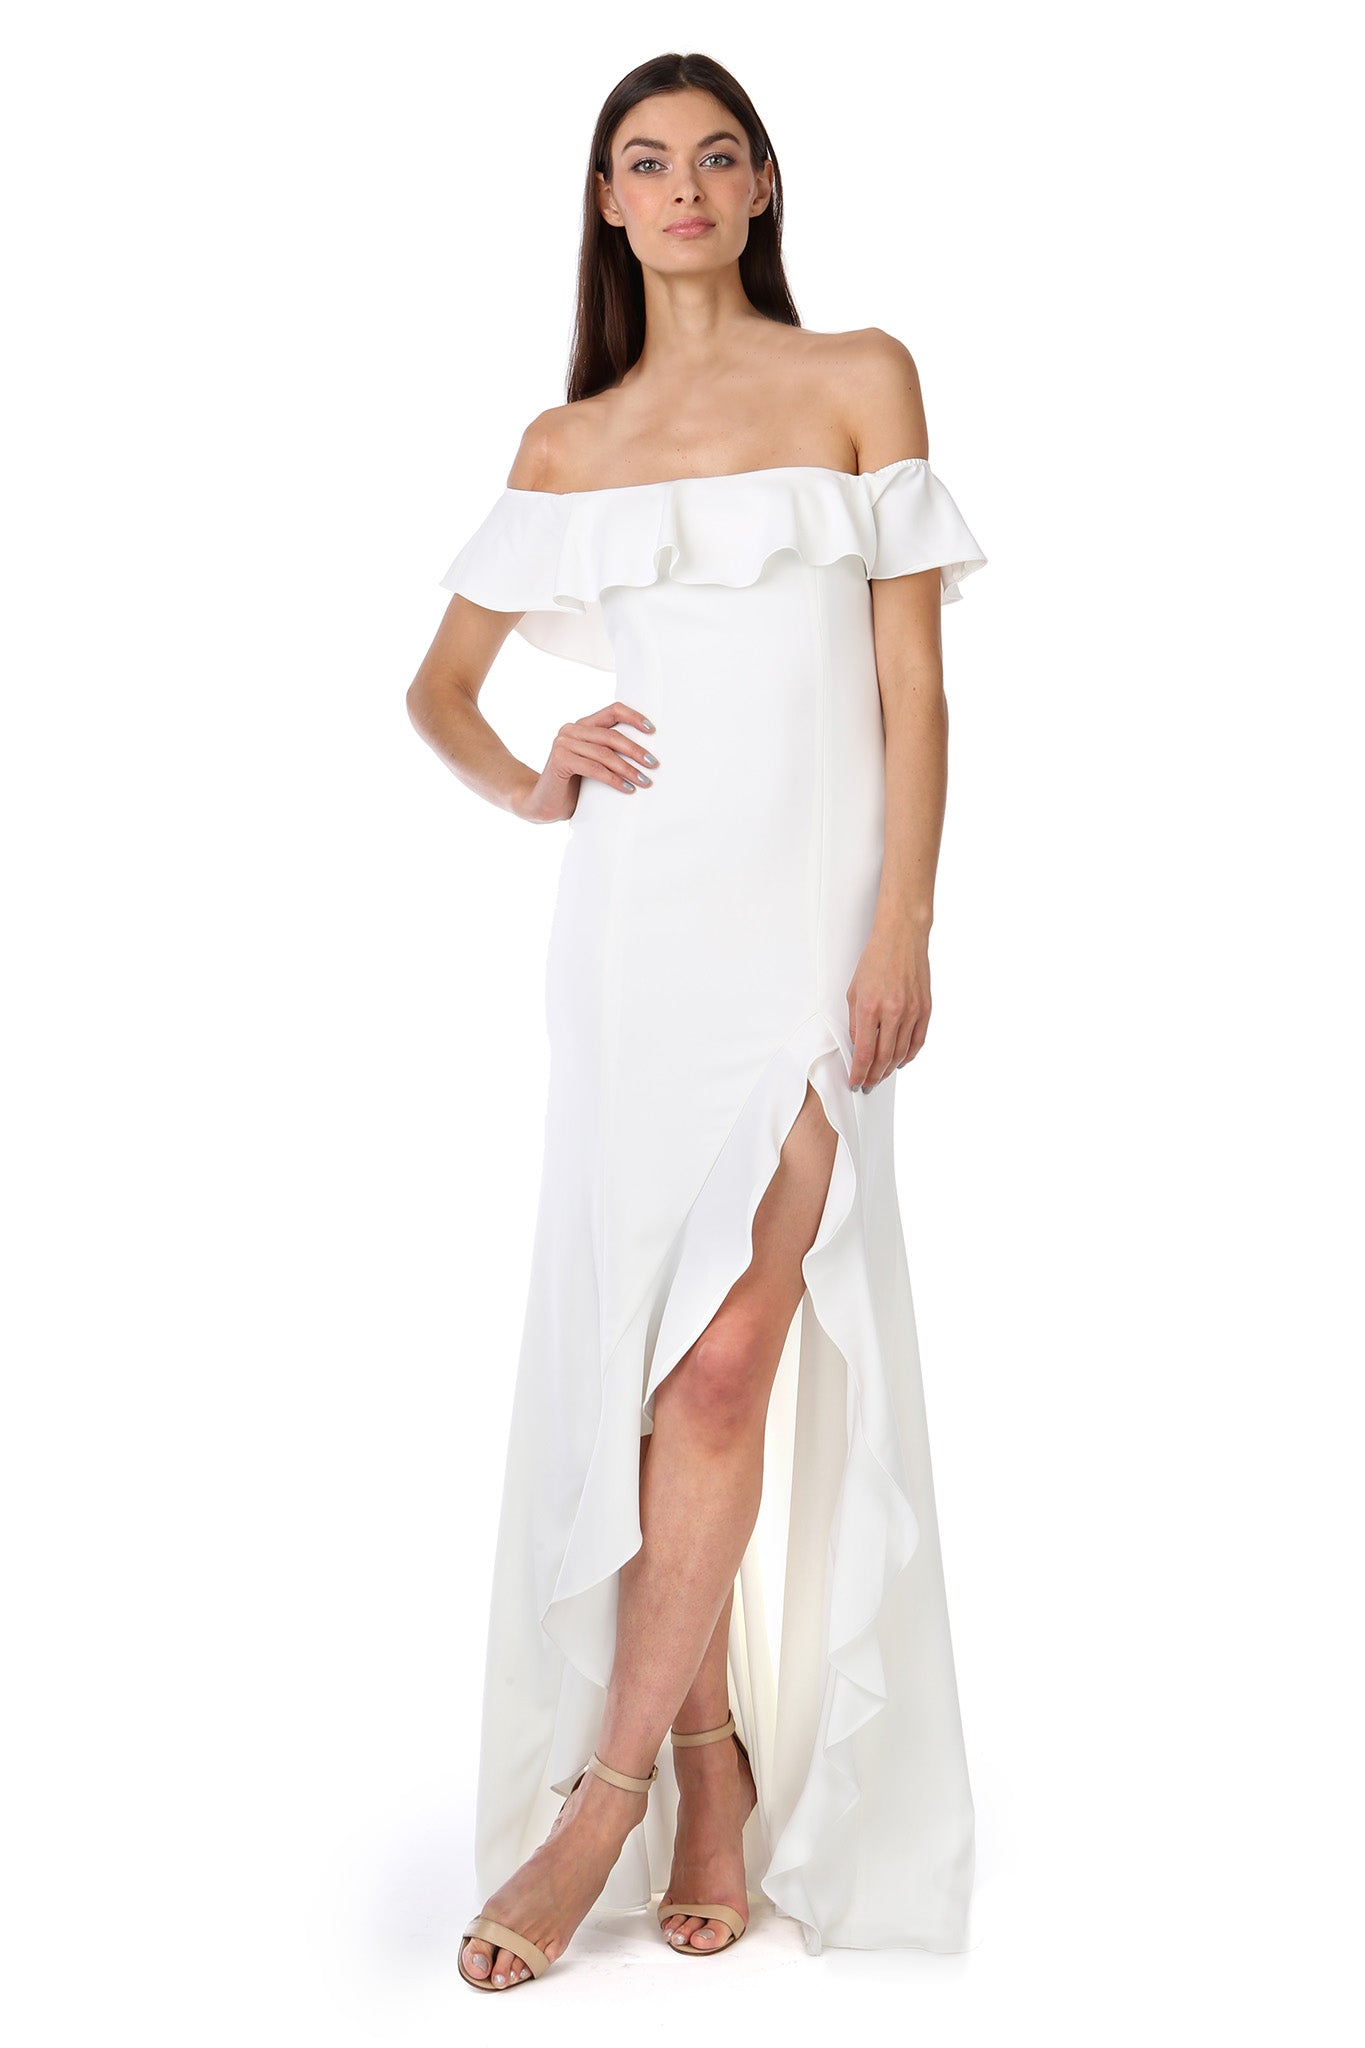 Light Ivory White Off-the-Shoulder Ruffle Gown - Front View